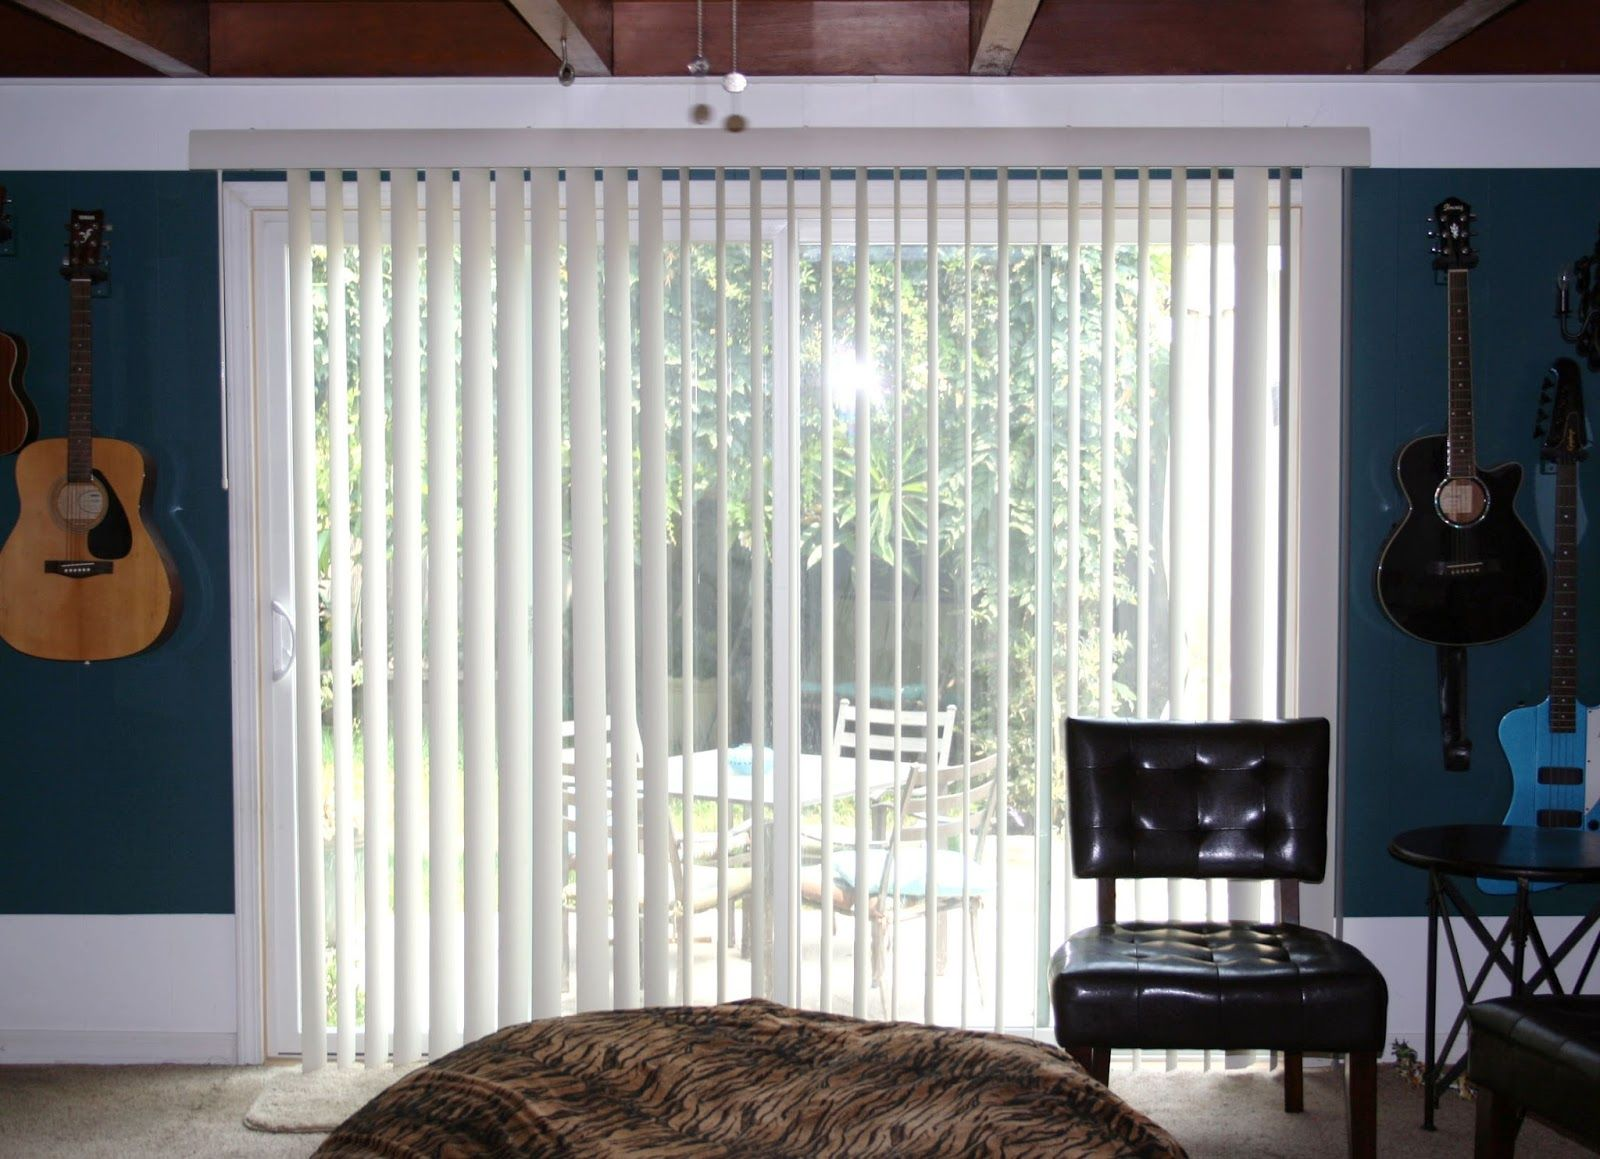 Hanging Curtains On A Vertical Blind Track Vertical Blinds